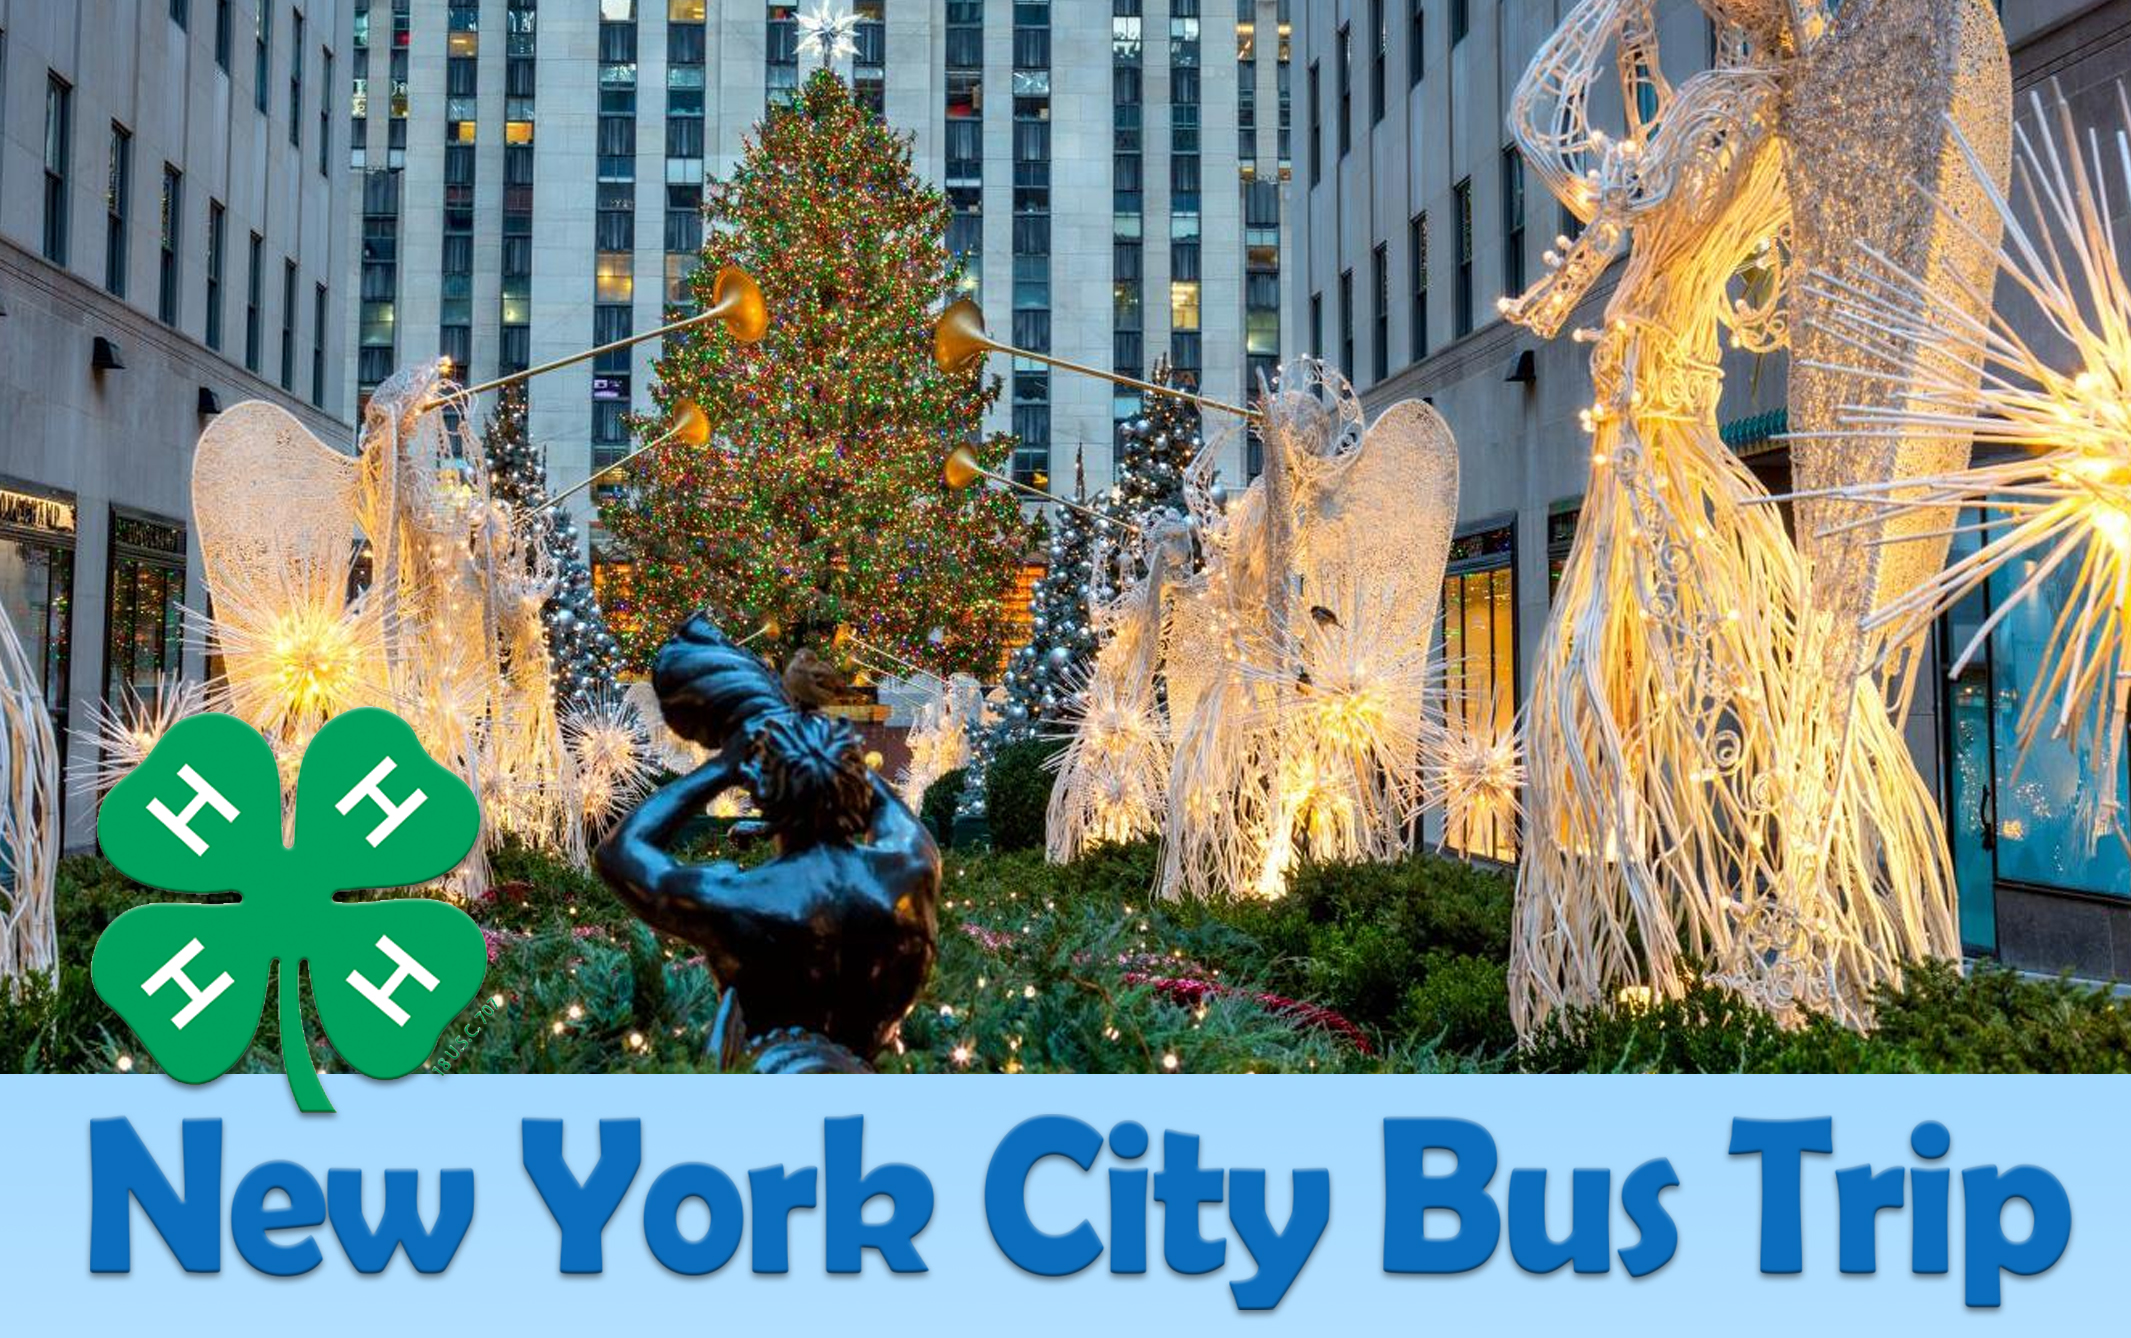 Christmas Ny 2019.New York City Bus Trip North Carolina Cooperative Extension